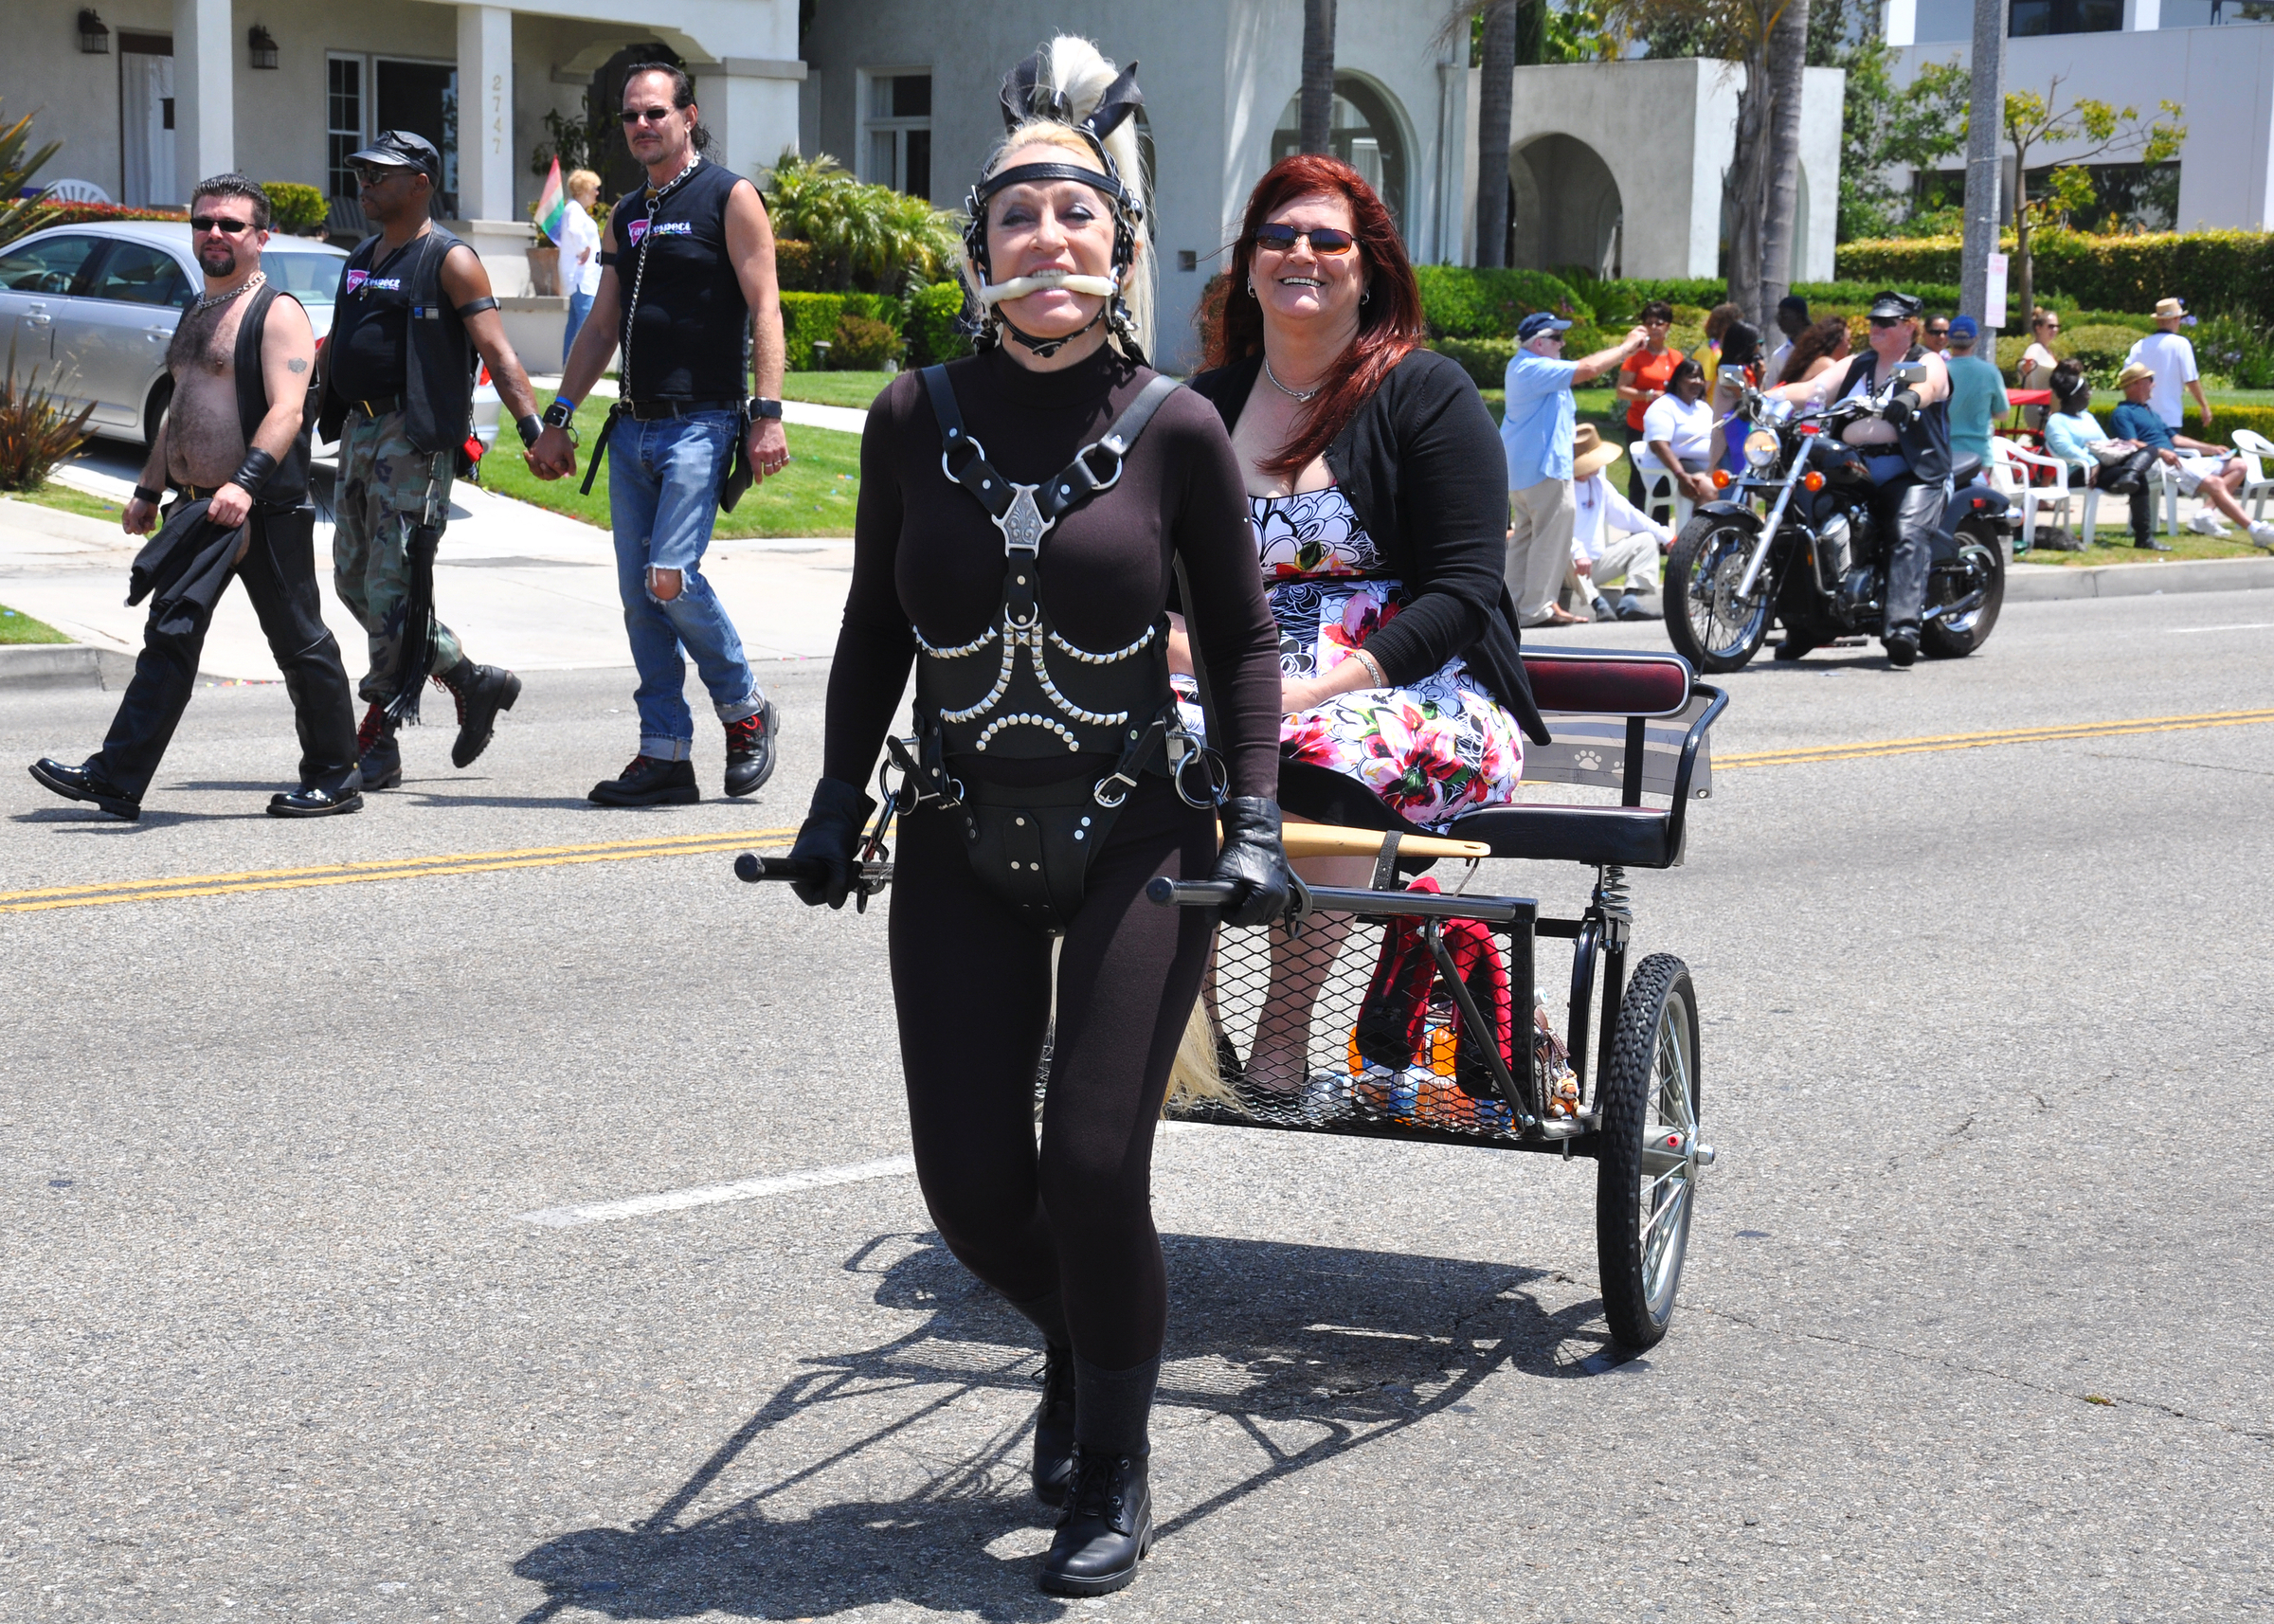 long-beach-pride-2012-144a